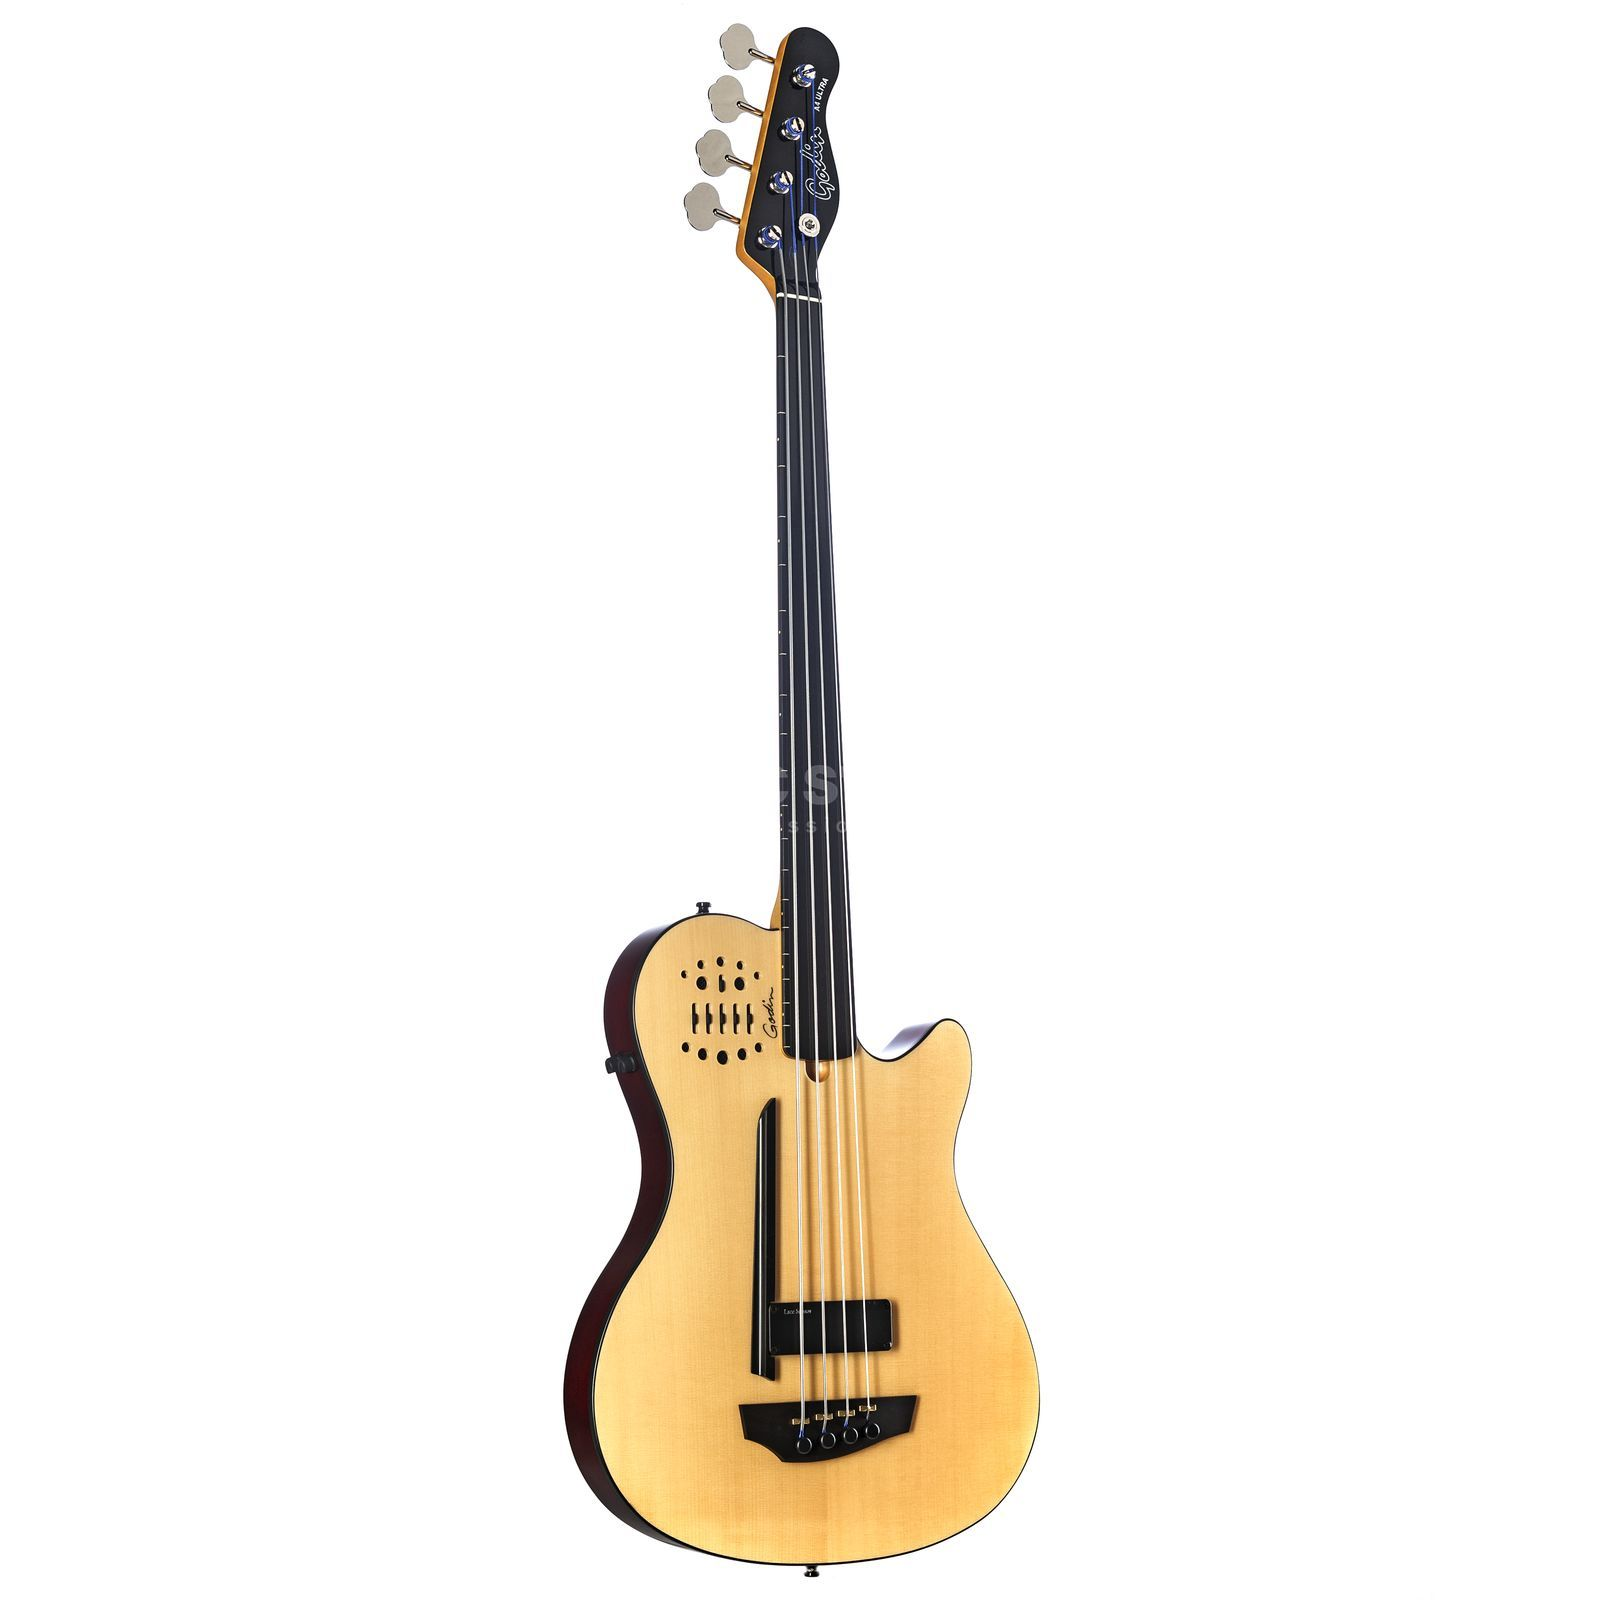 Godin A4 Ultra Fretless SA Bass Guit ar  B-Stock Product Image